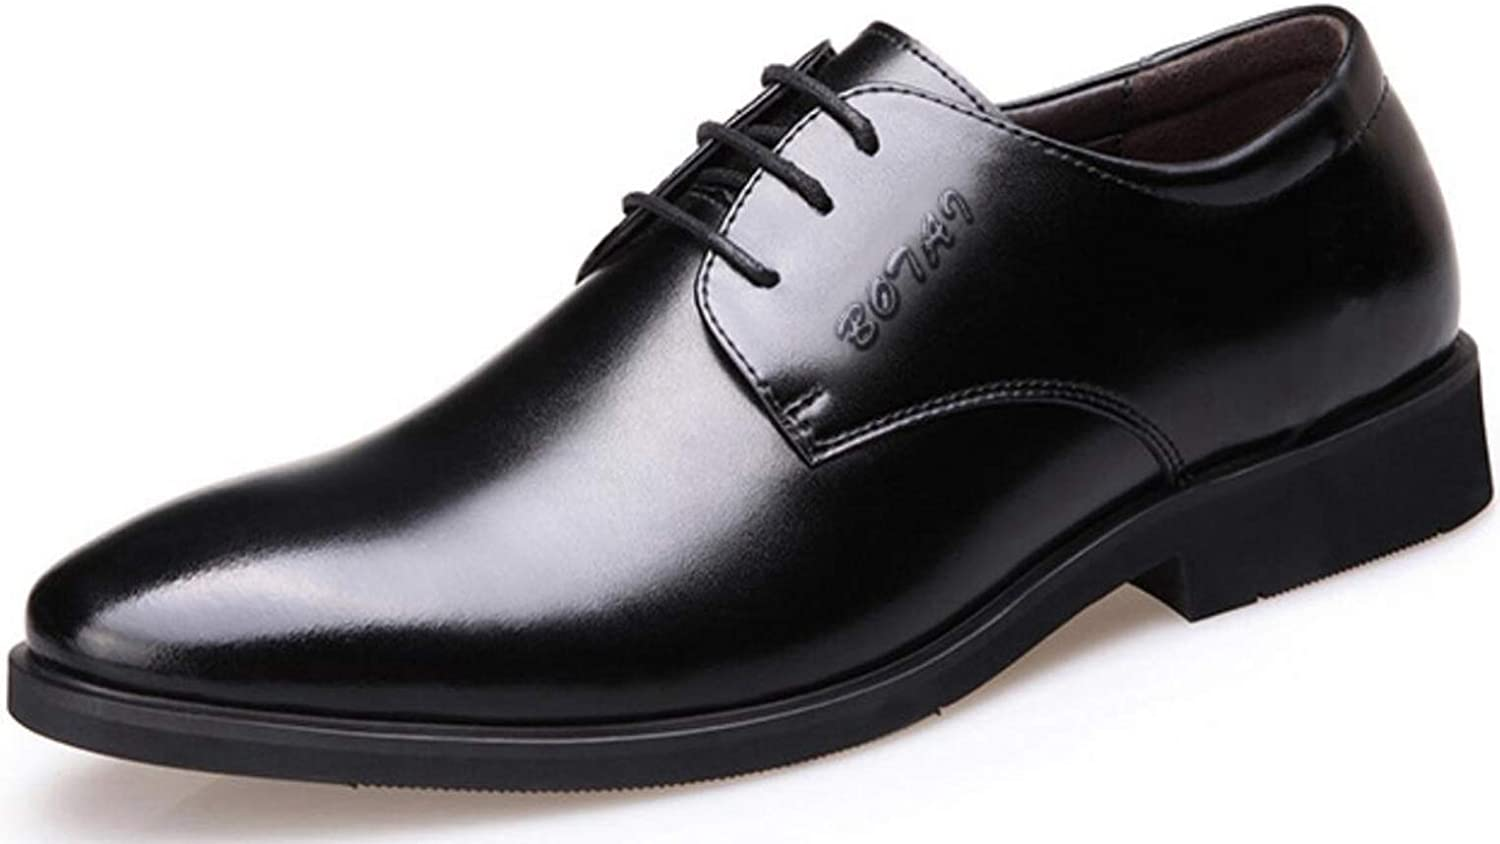 Shiney Men's shoes New Business Dress British Lace Up Casual shoes